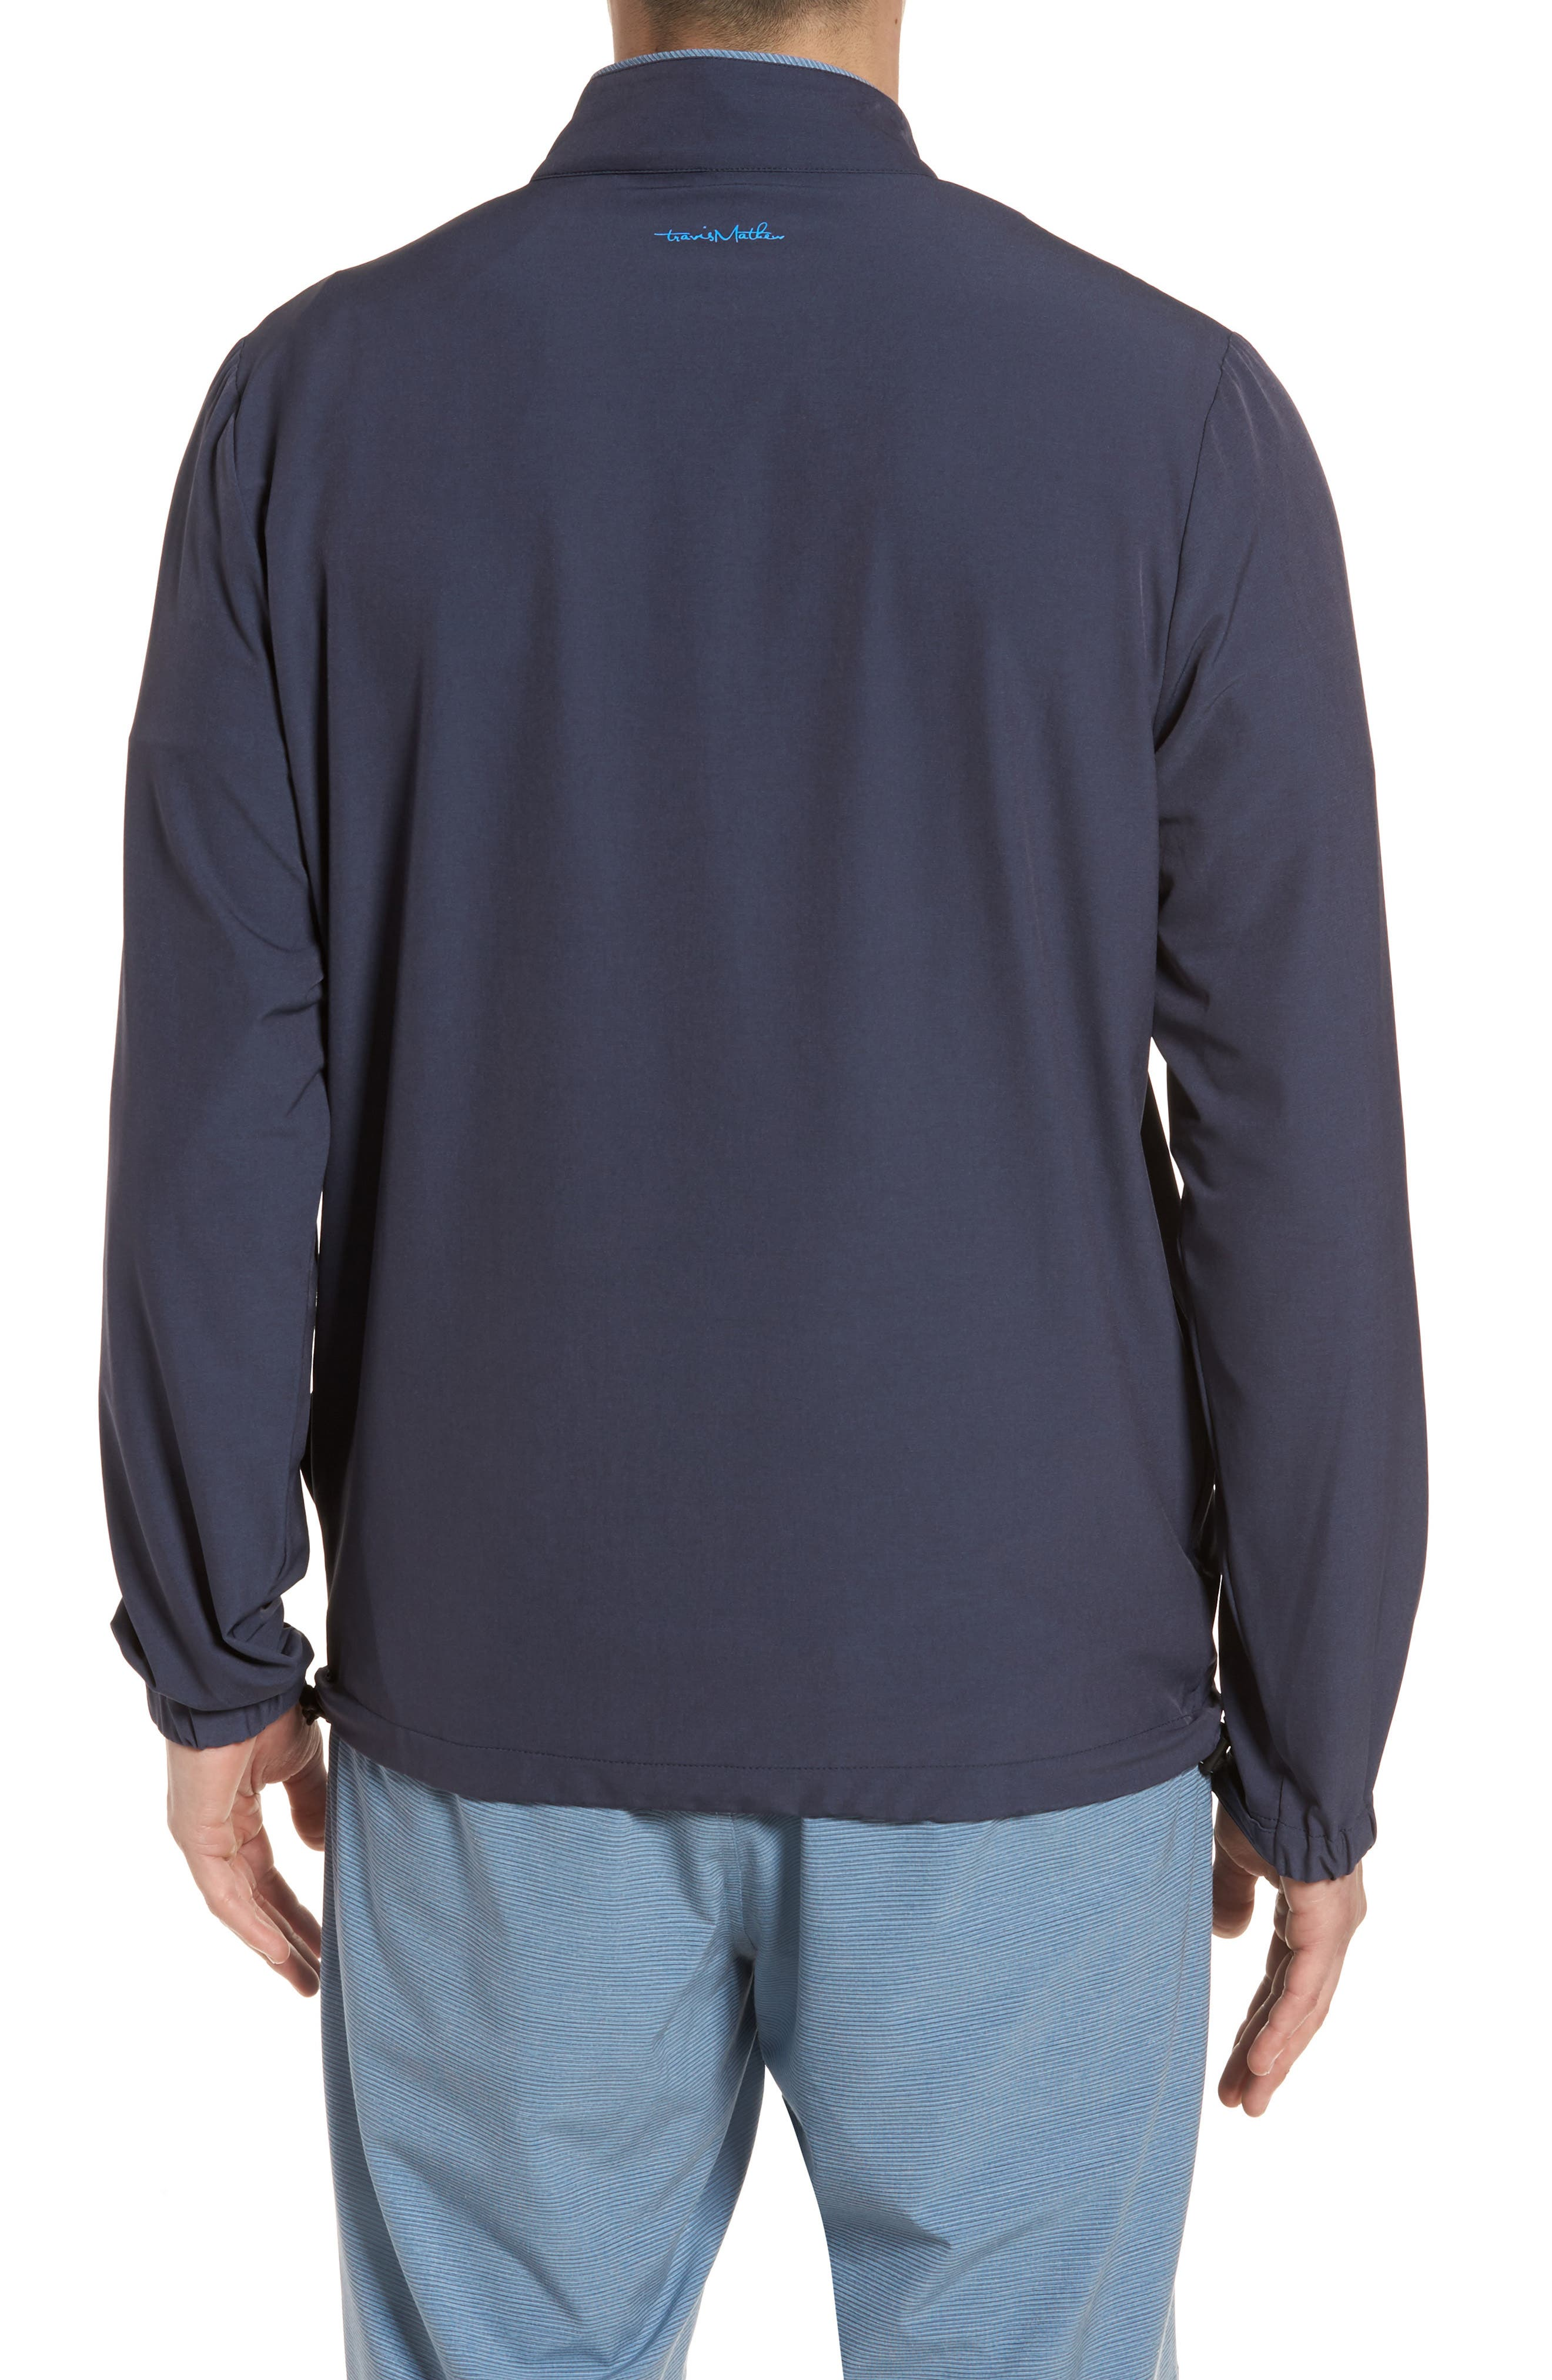 Leon Half Zip Pullover,                             Alternate thumbnail 2, color,                             Blue Nights/ French Blue